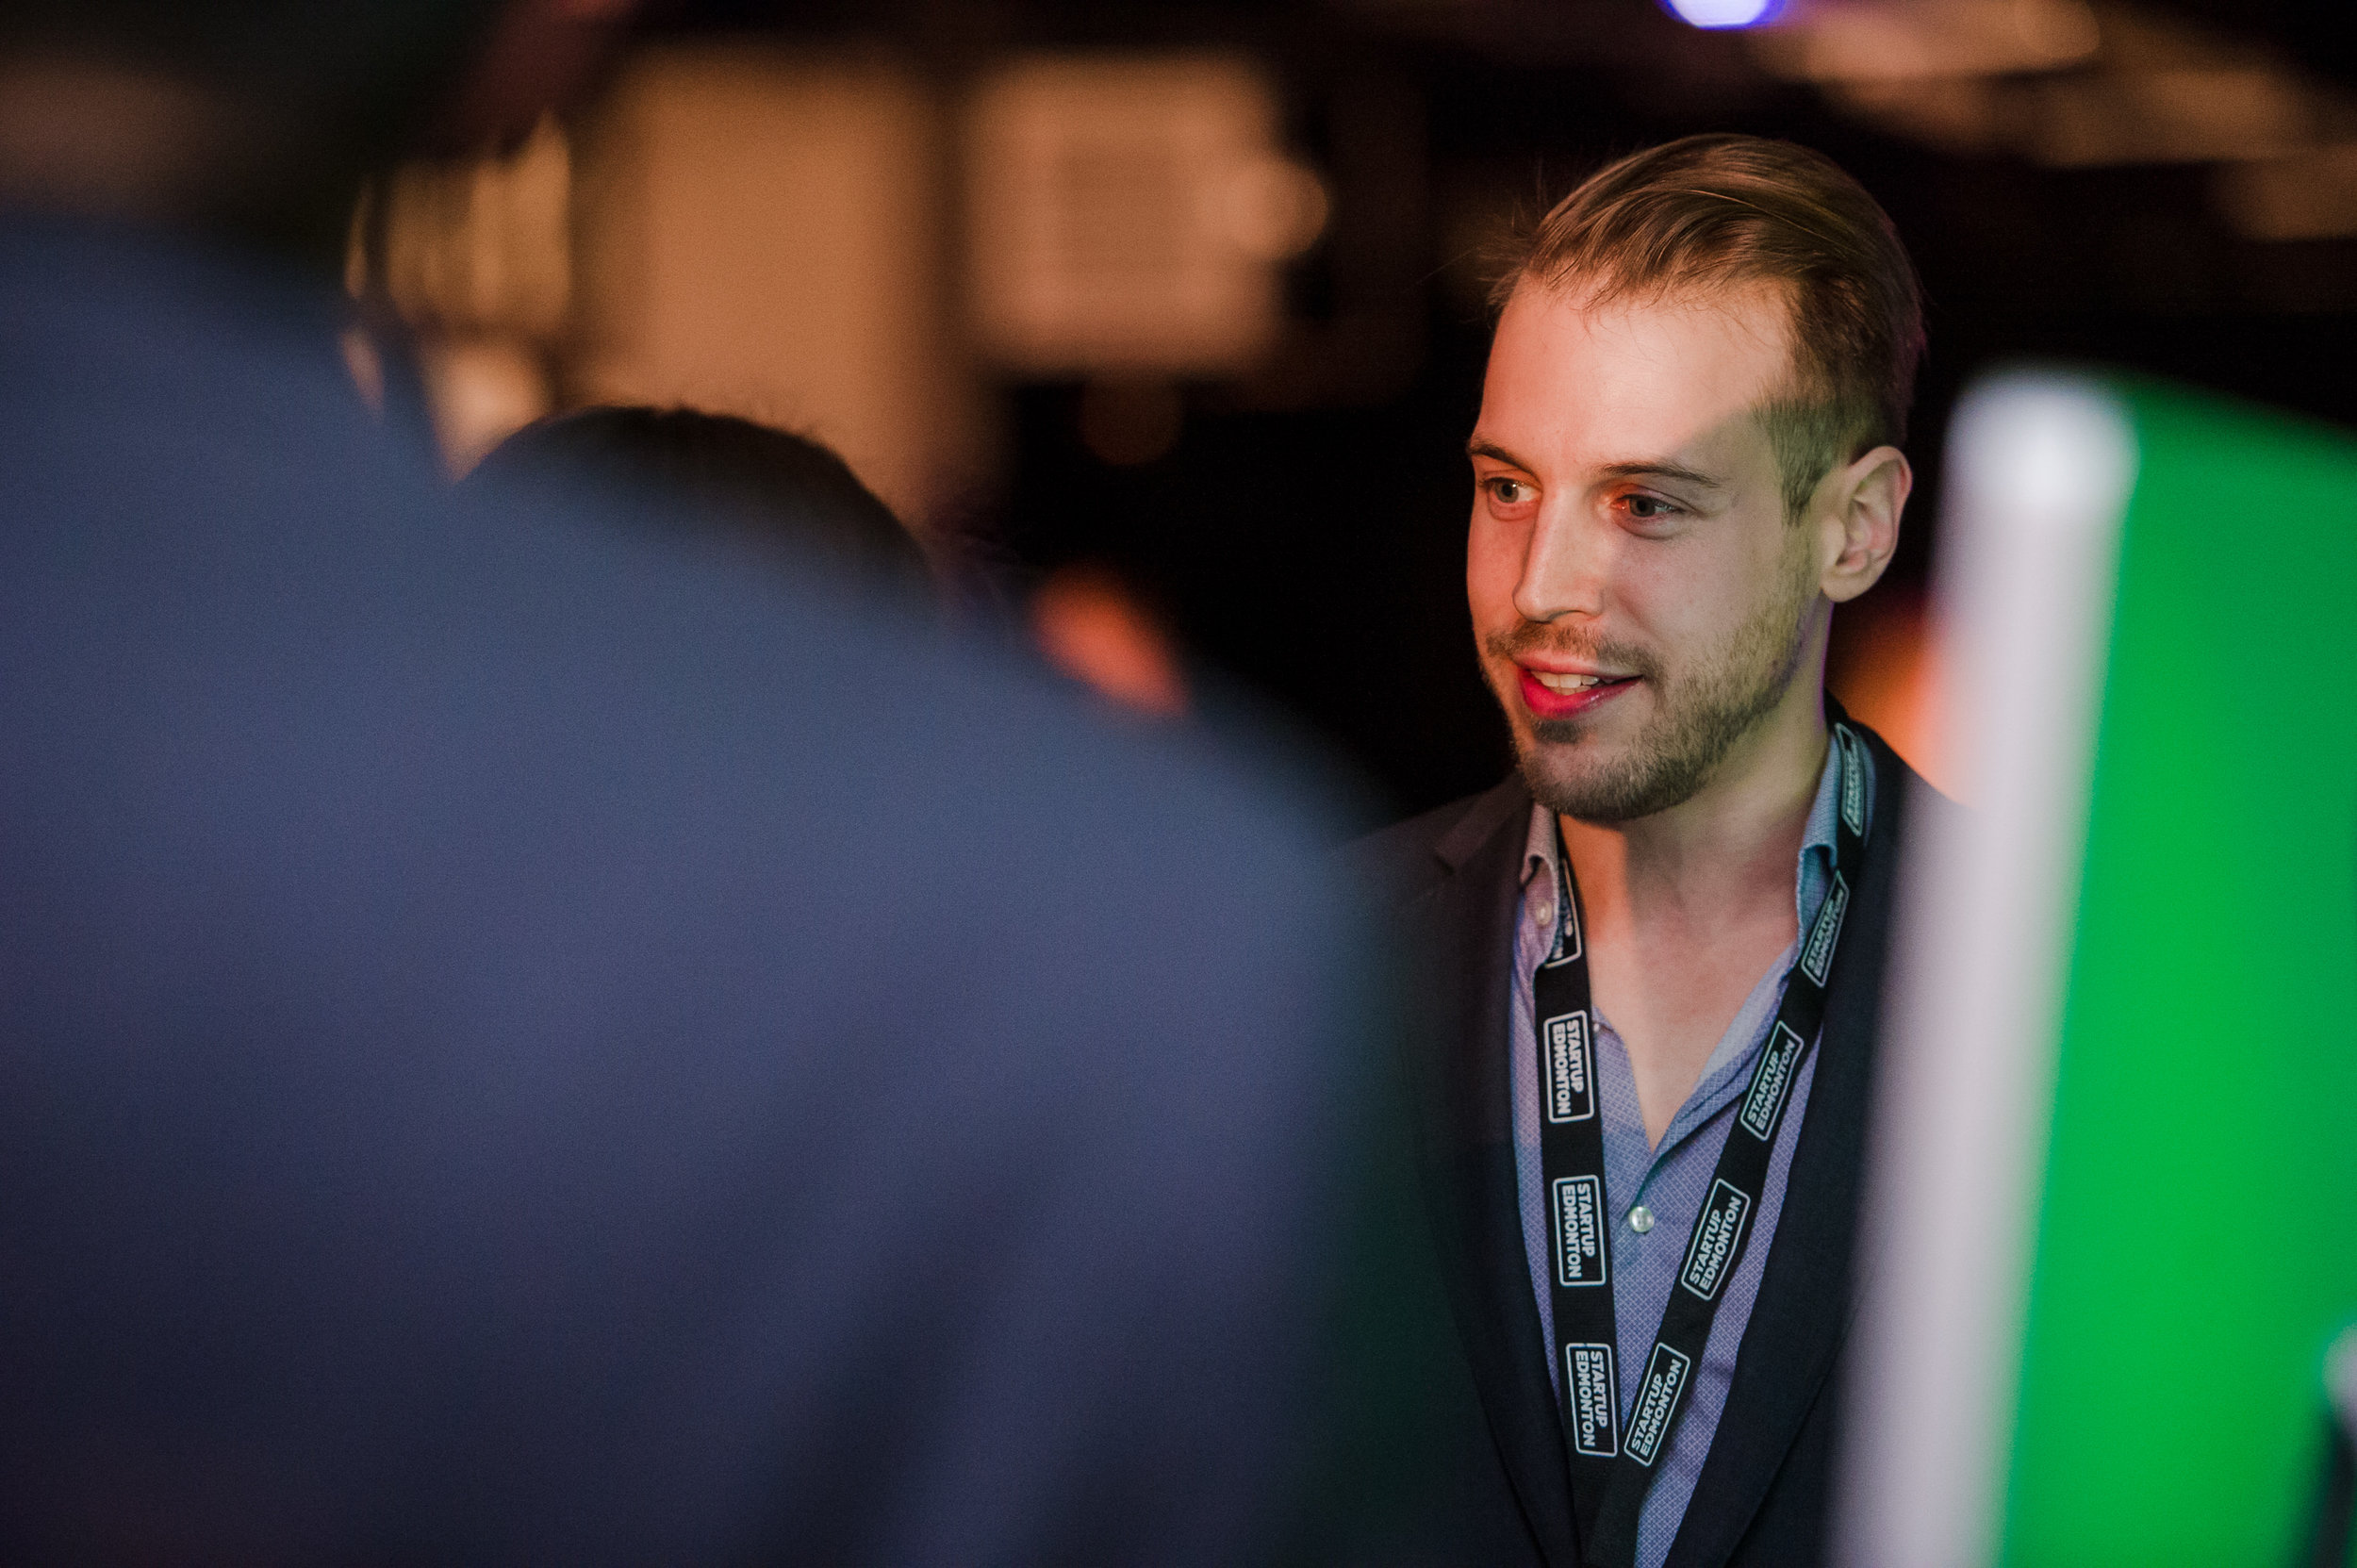 Amir Reshef, CEO and co-founder of dealcloser, chats with the crowd at Launch Party 7.